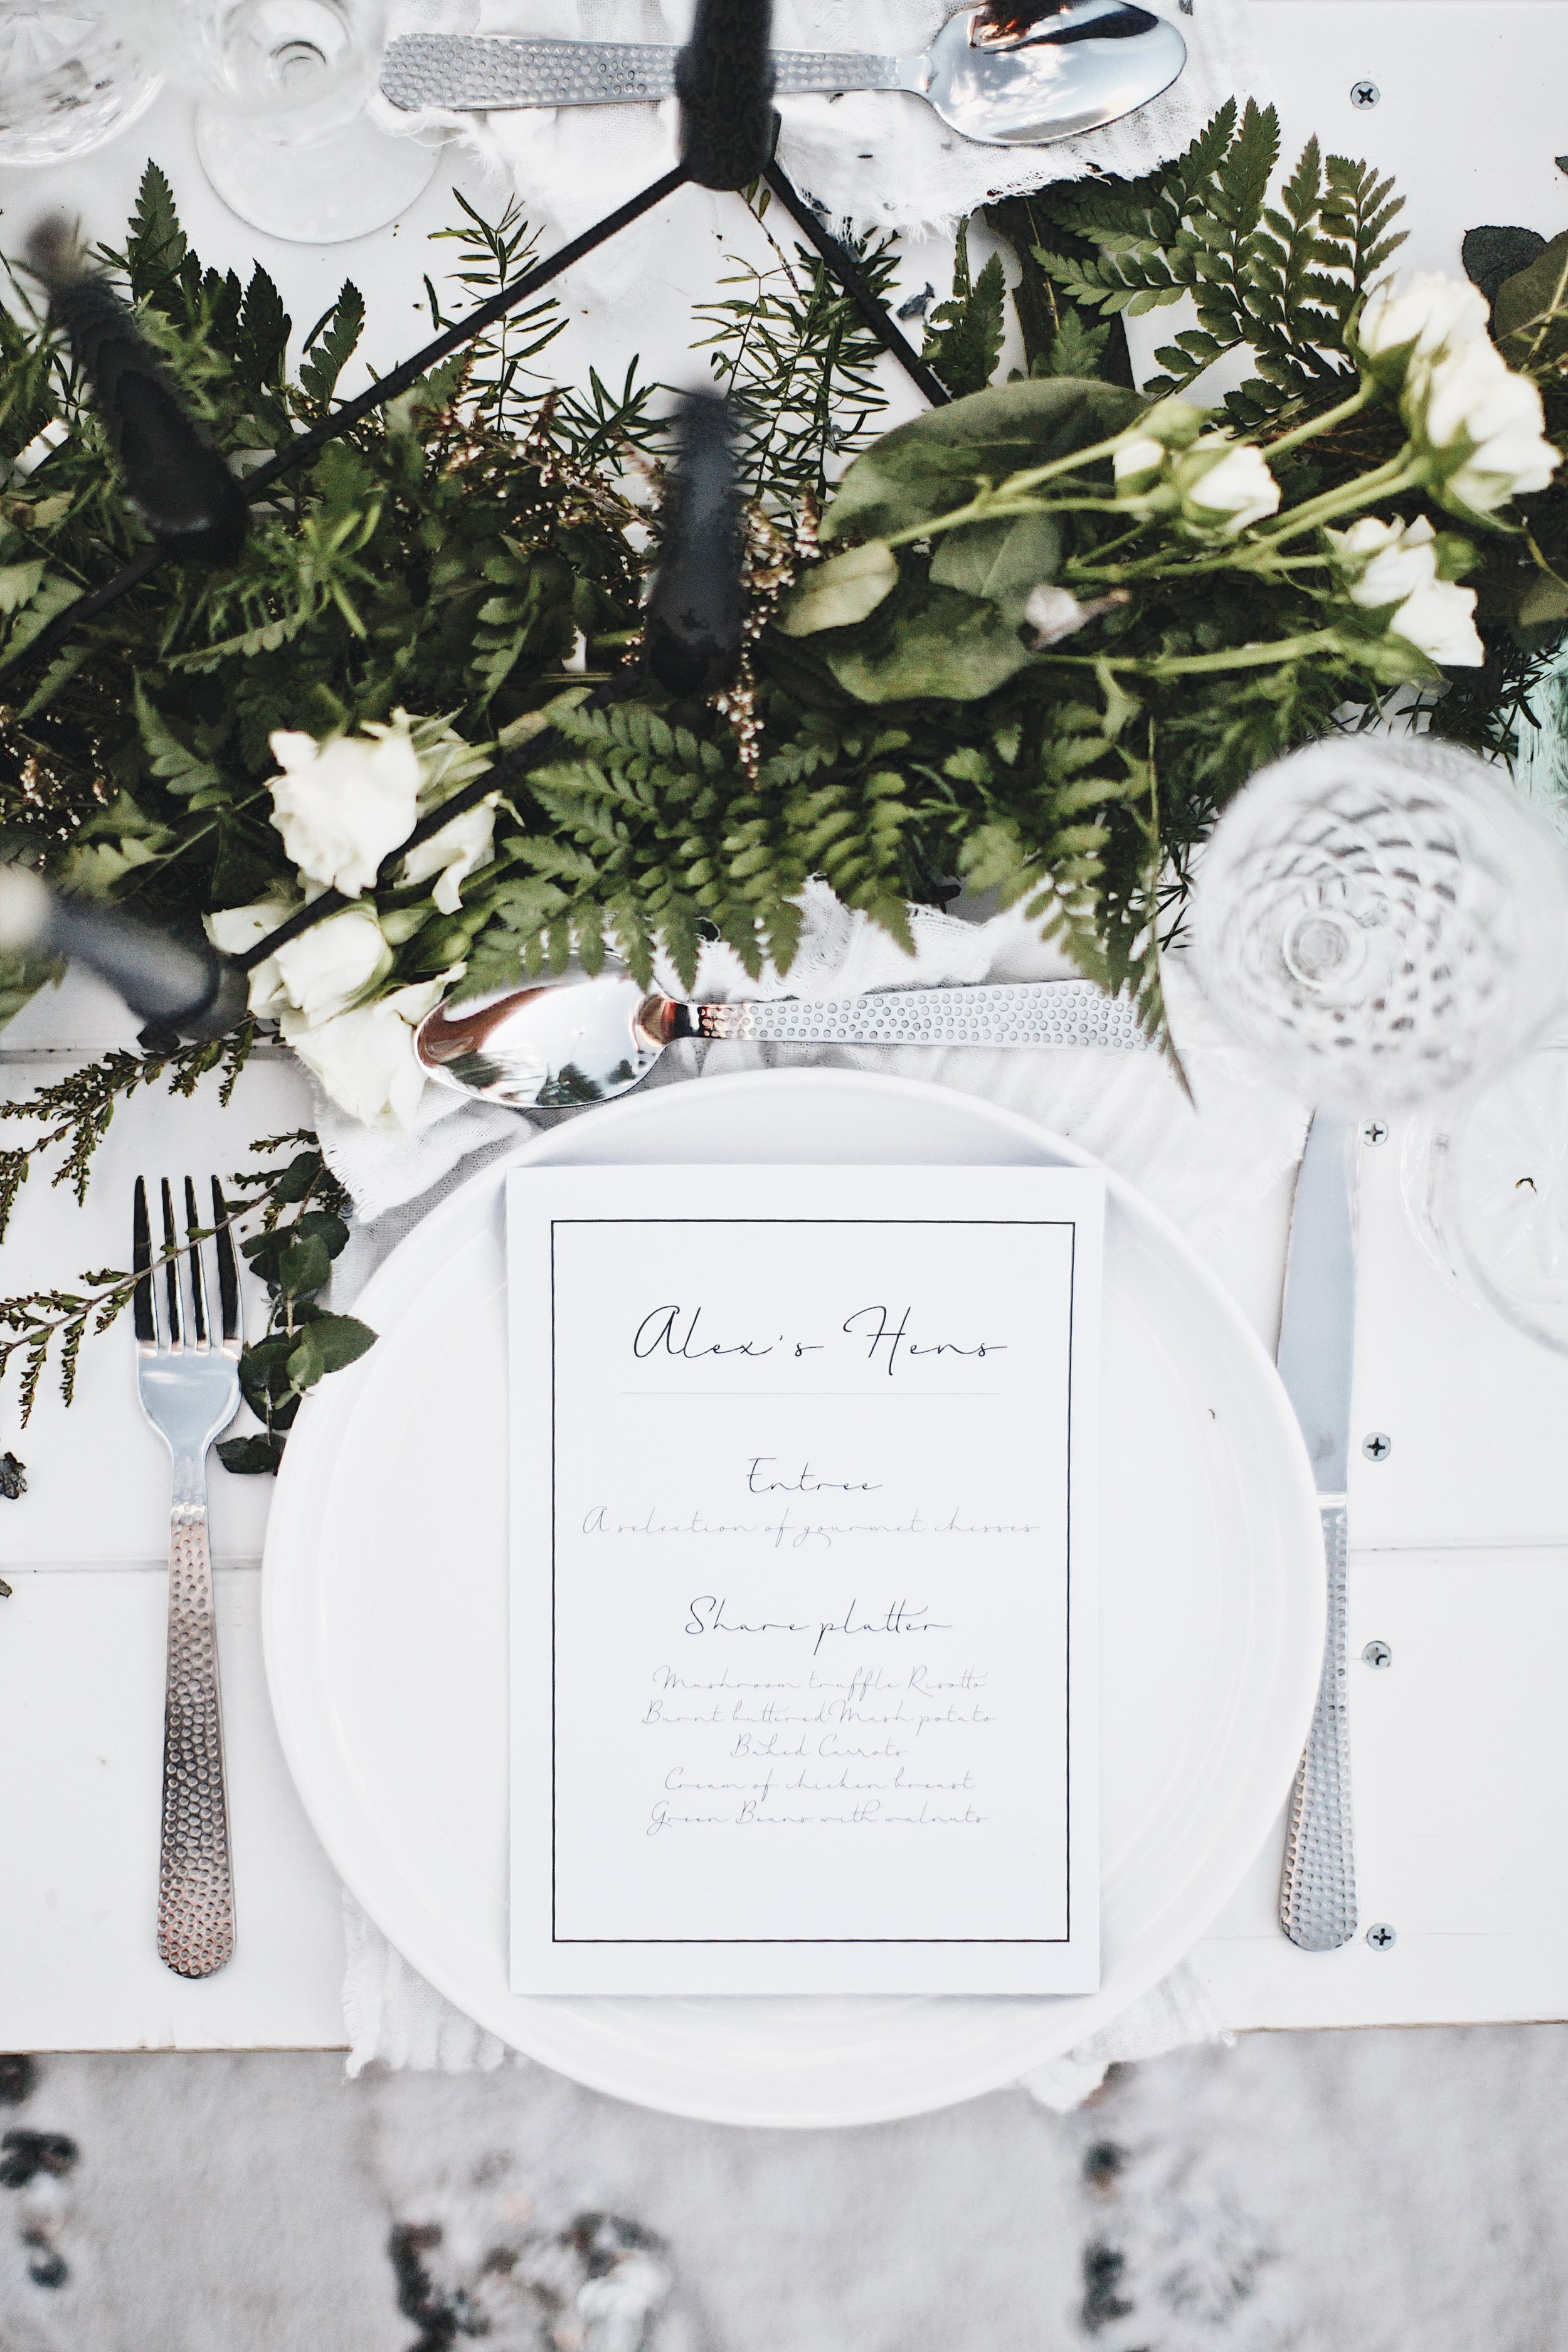 Table setting with white menu on plate and green florals